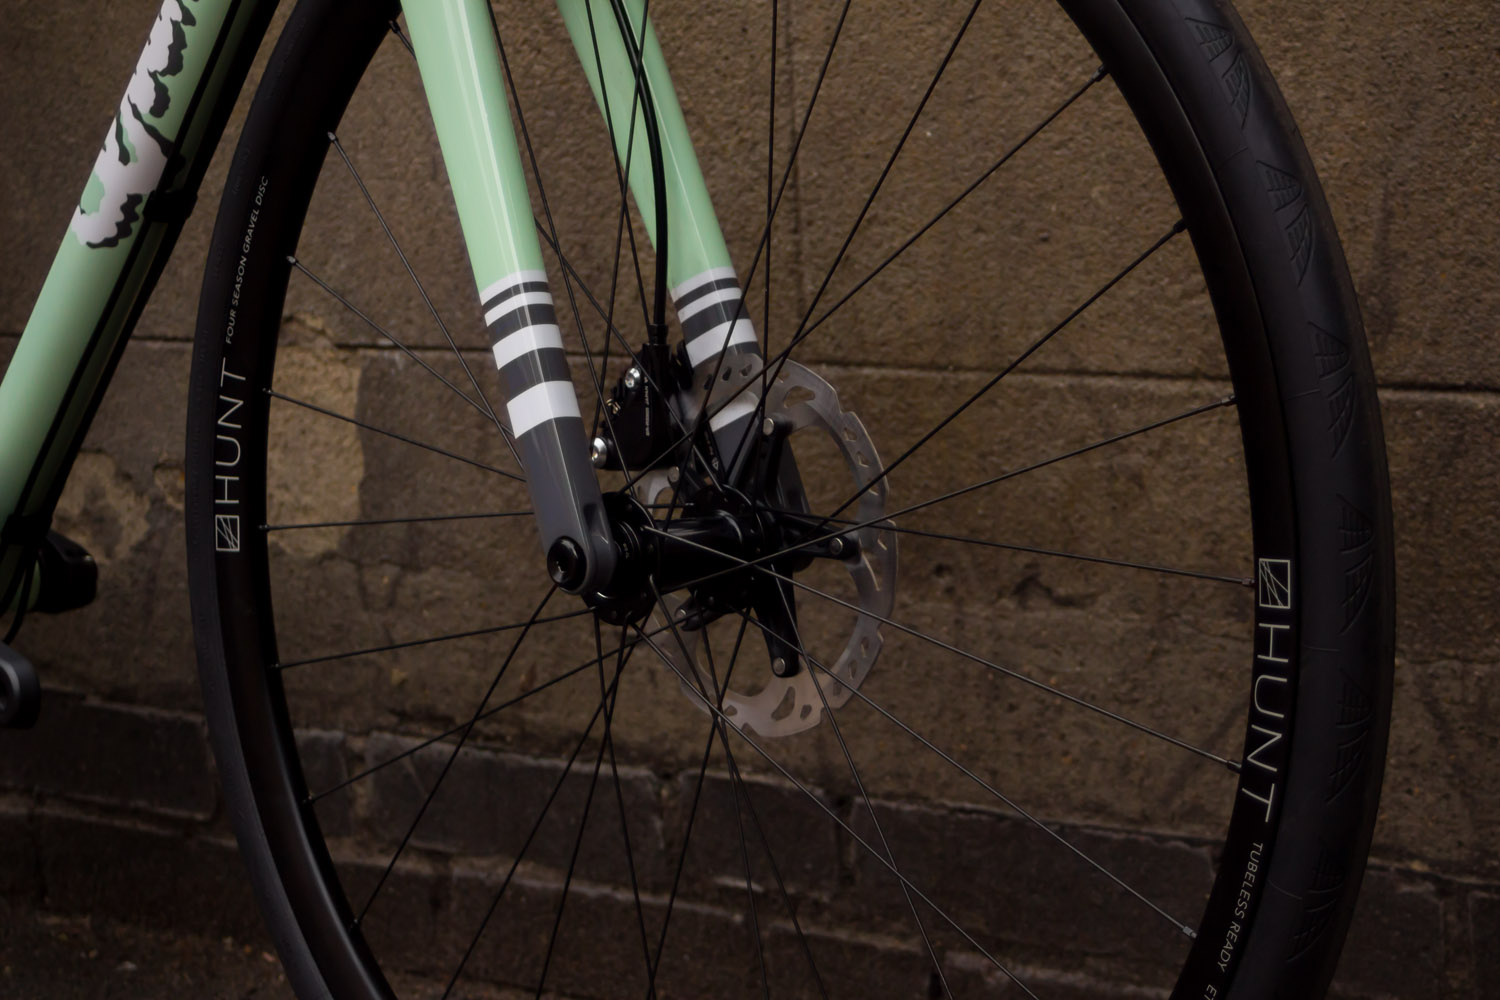 quirk_cycles_brendans_all_road_web_0009.jpg